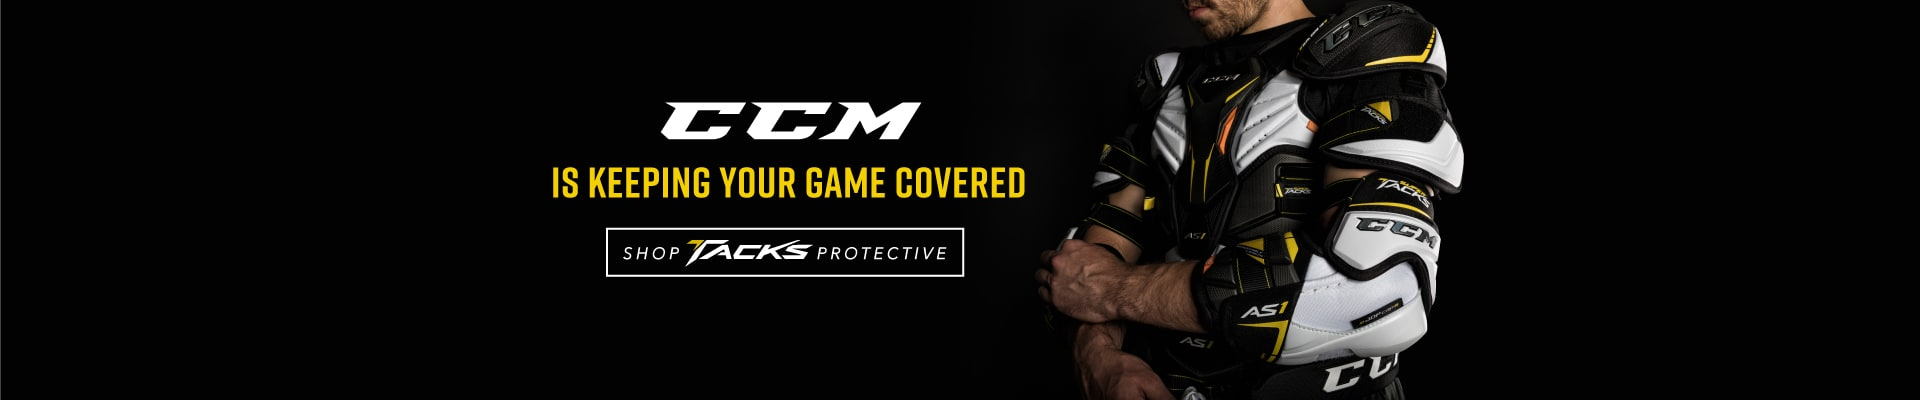 Shop CCM Tacks Protective